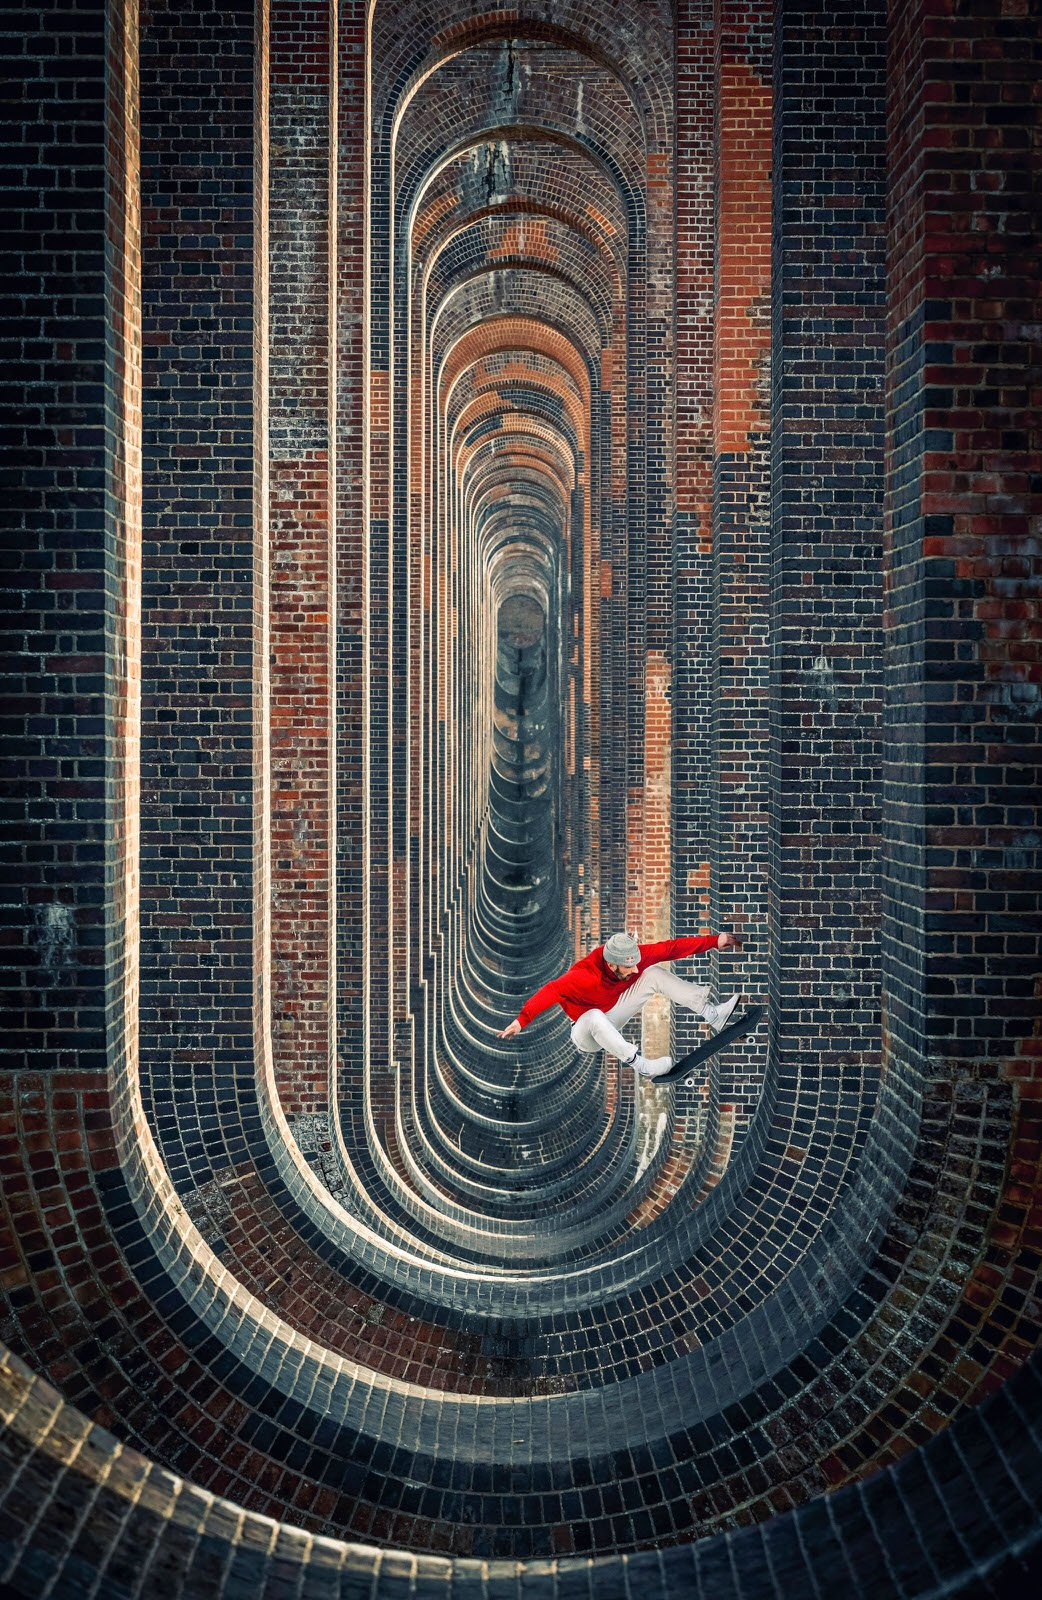 Playground: Lorenz Holder, Germany, with a shot of Vladic Scholz in the surreal Ouse Valley Viaduct, South England.